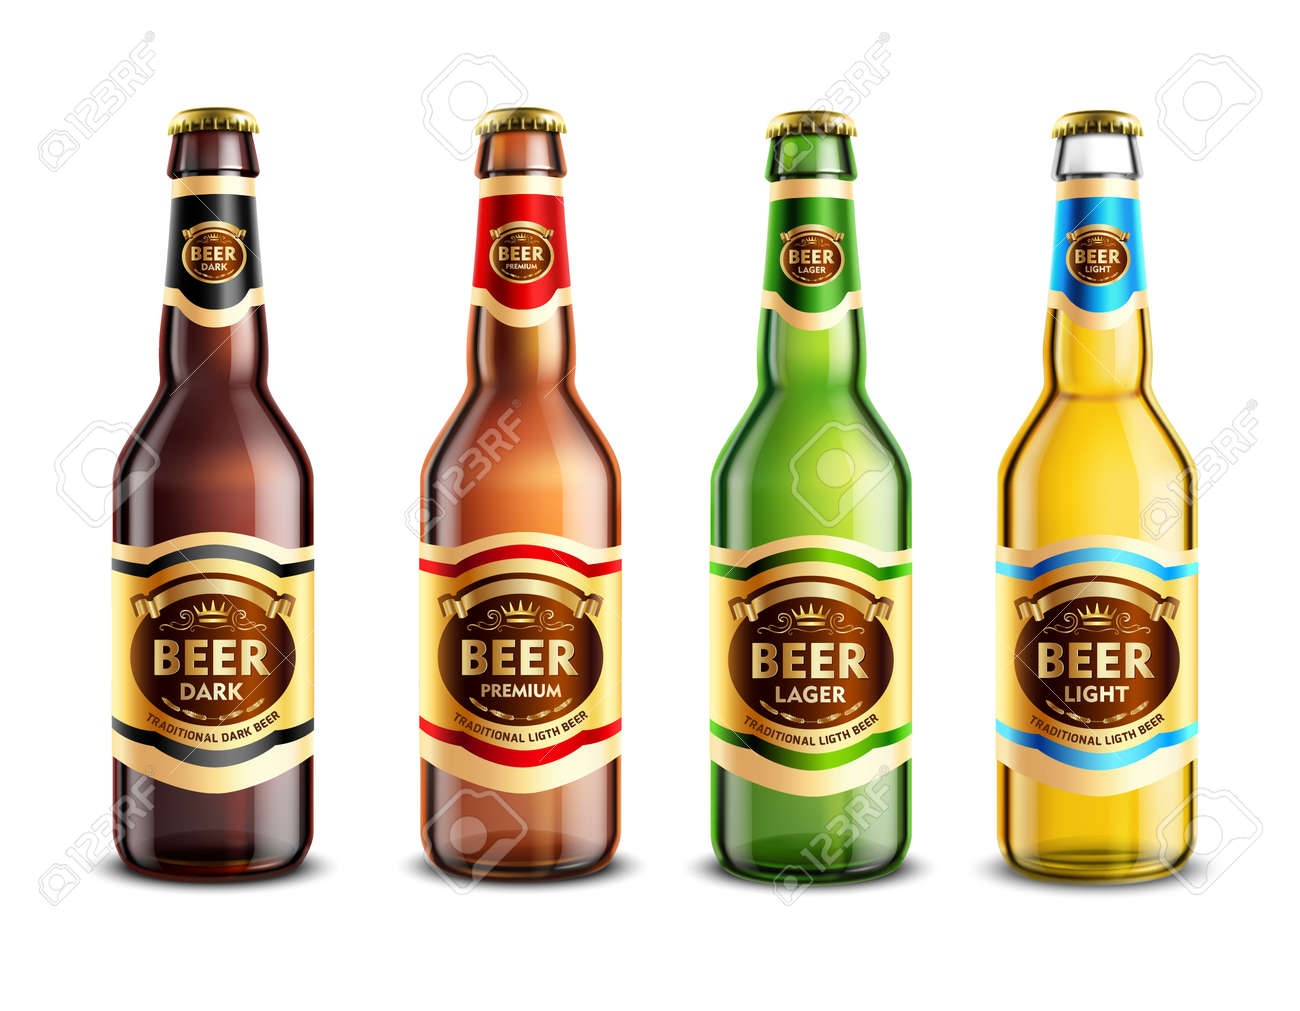 Set of realistic glass beer bottles with stickers and aluminum lids isolated on white background vector illustration - 166139291